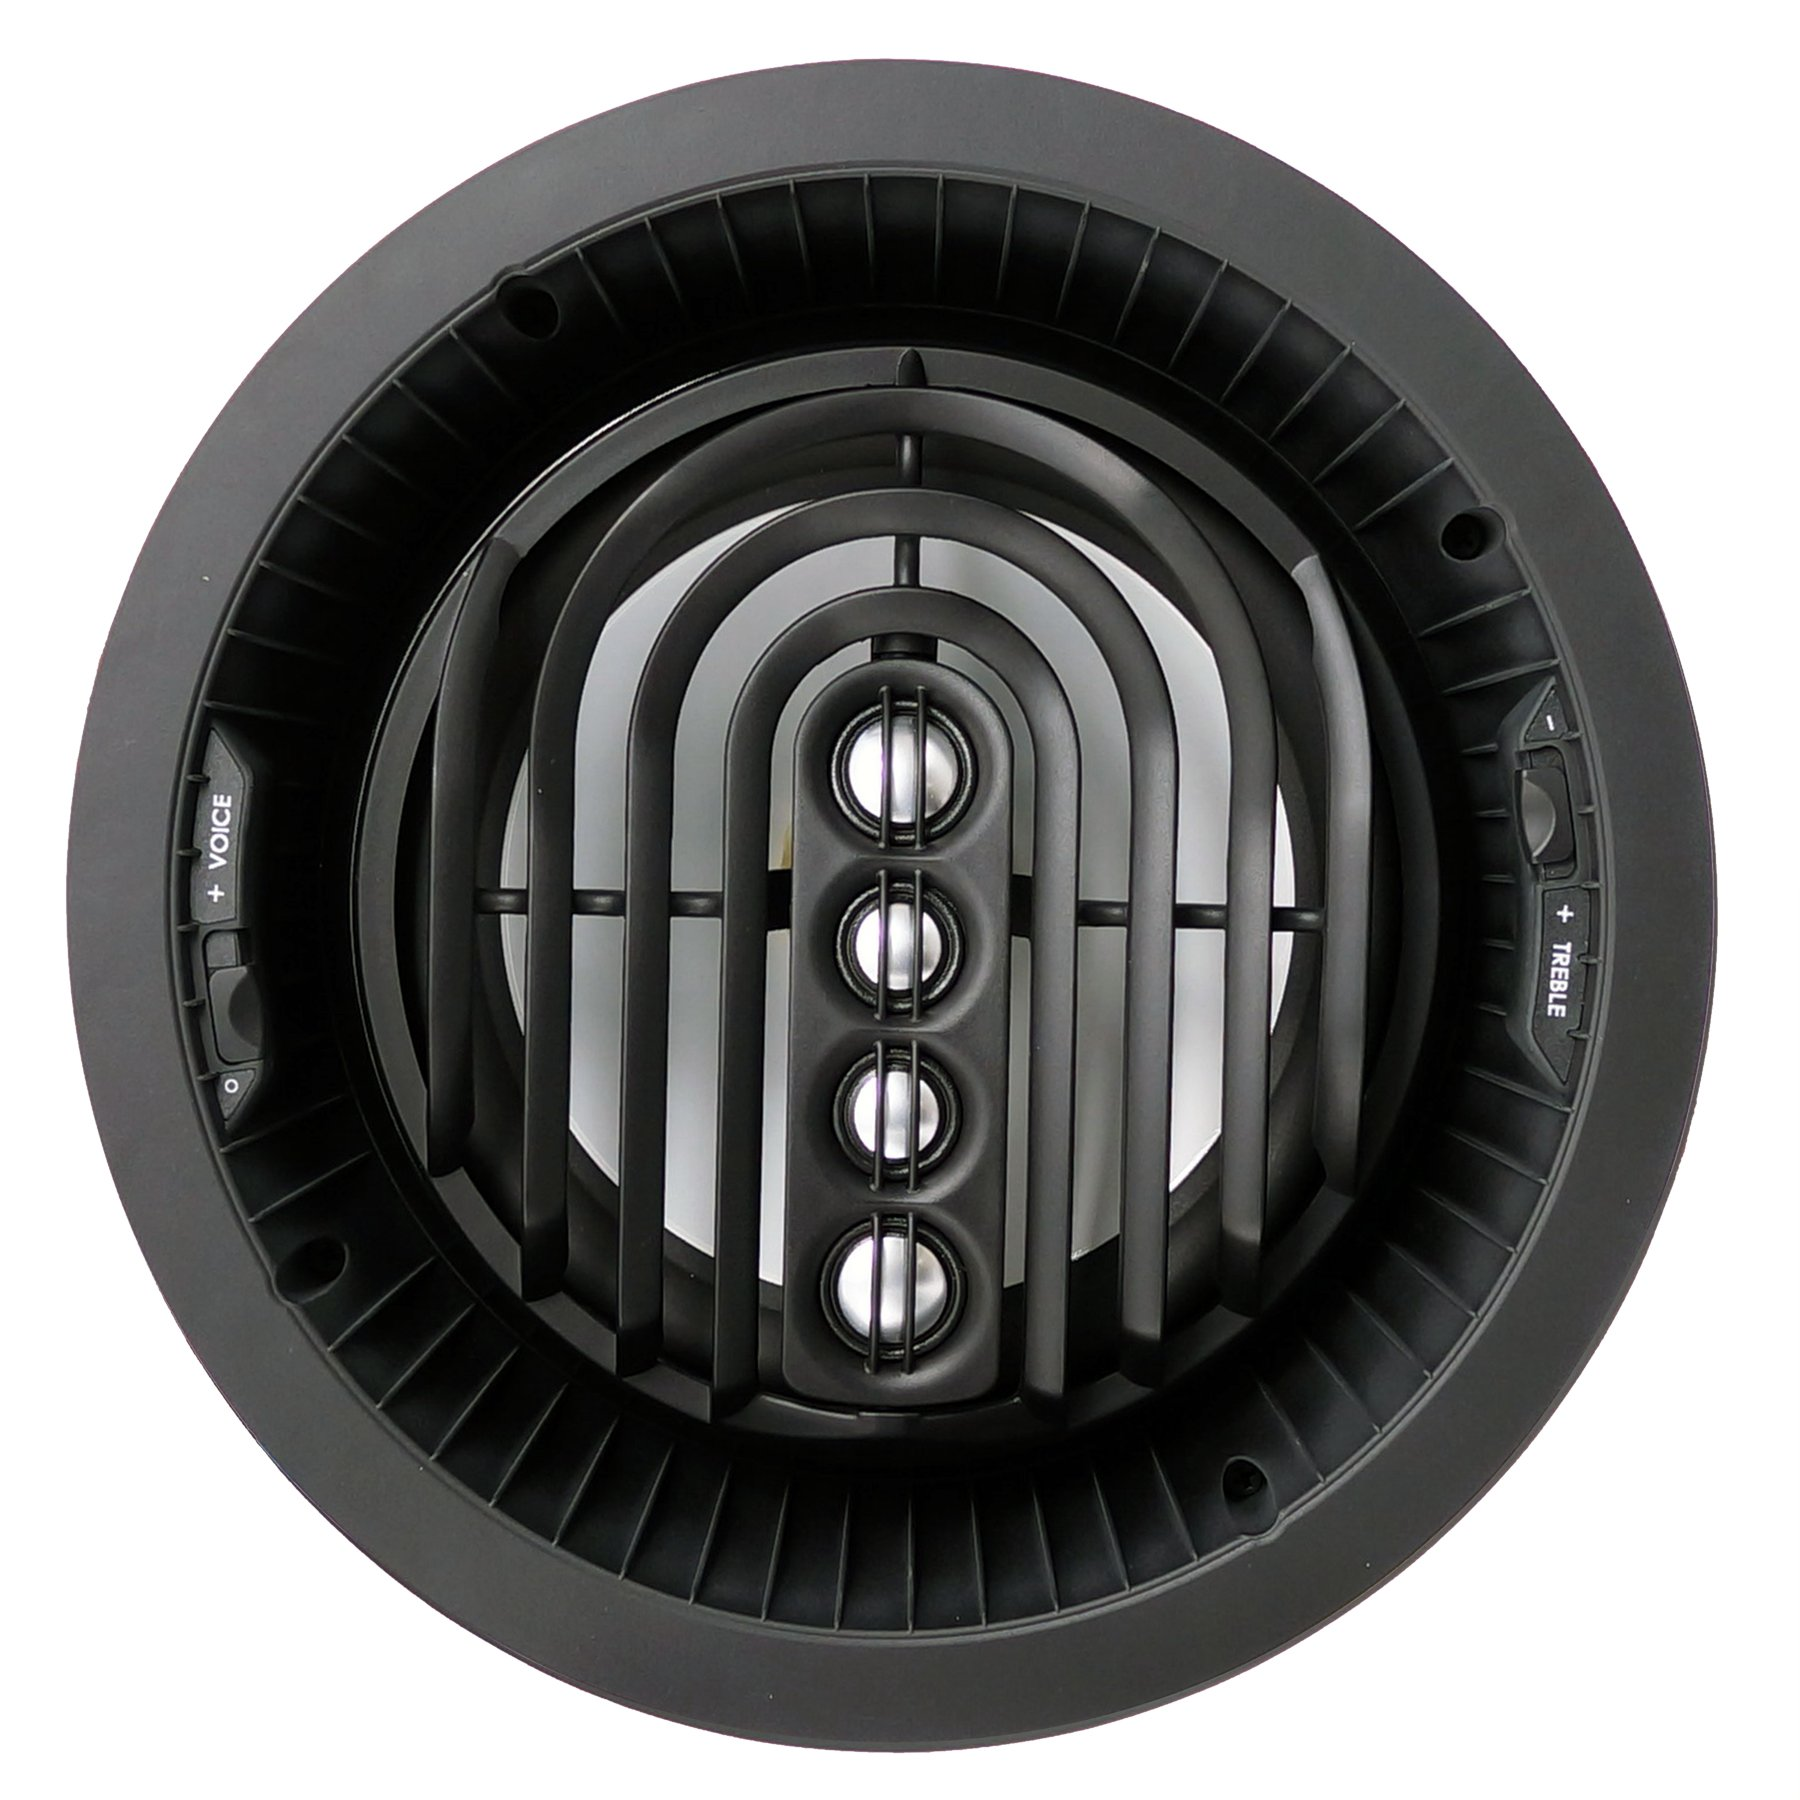 SpeakerCraft AIM 8 THREE Series 2 In-Ceiling Speaker - Each by SpeakerCraft